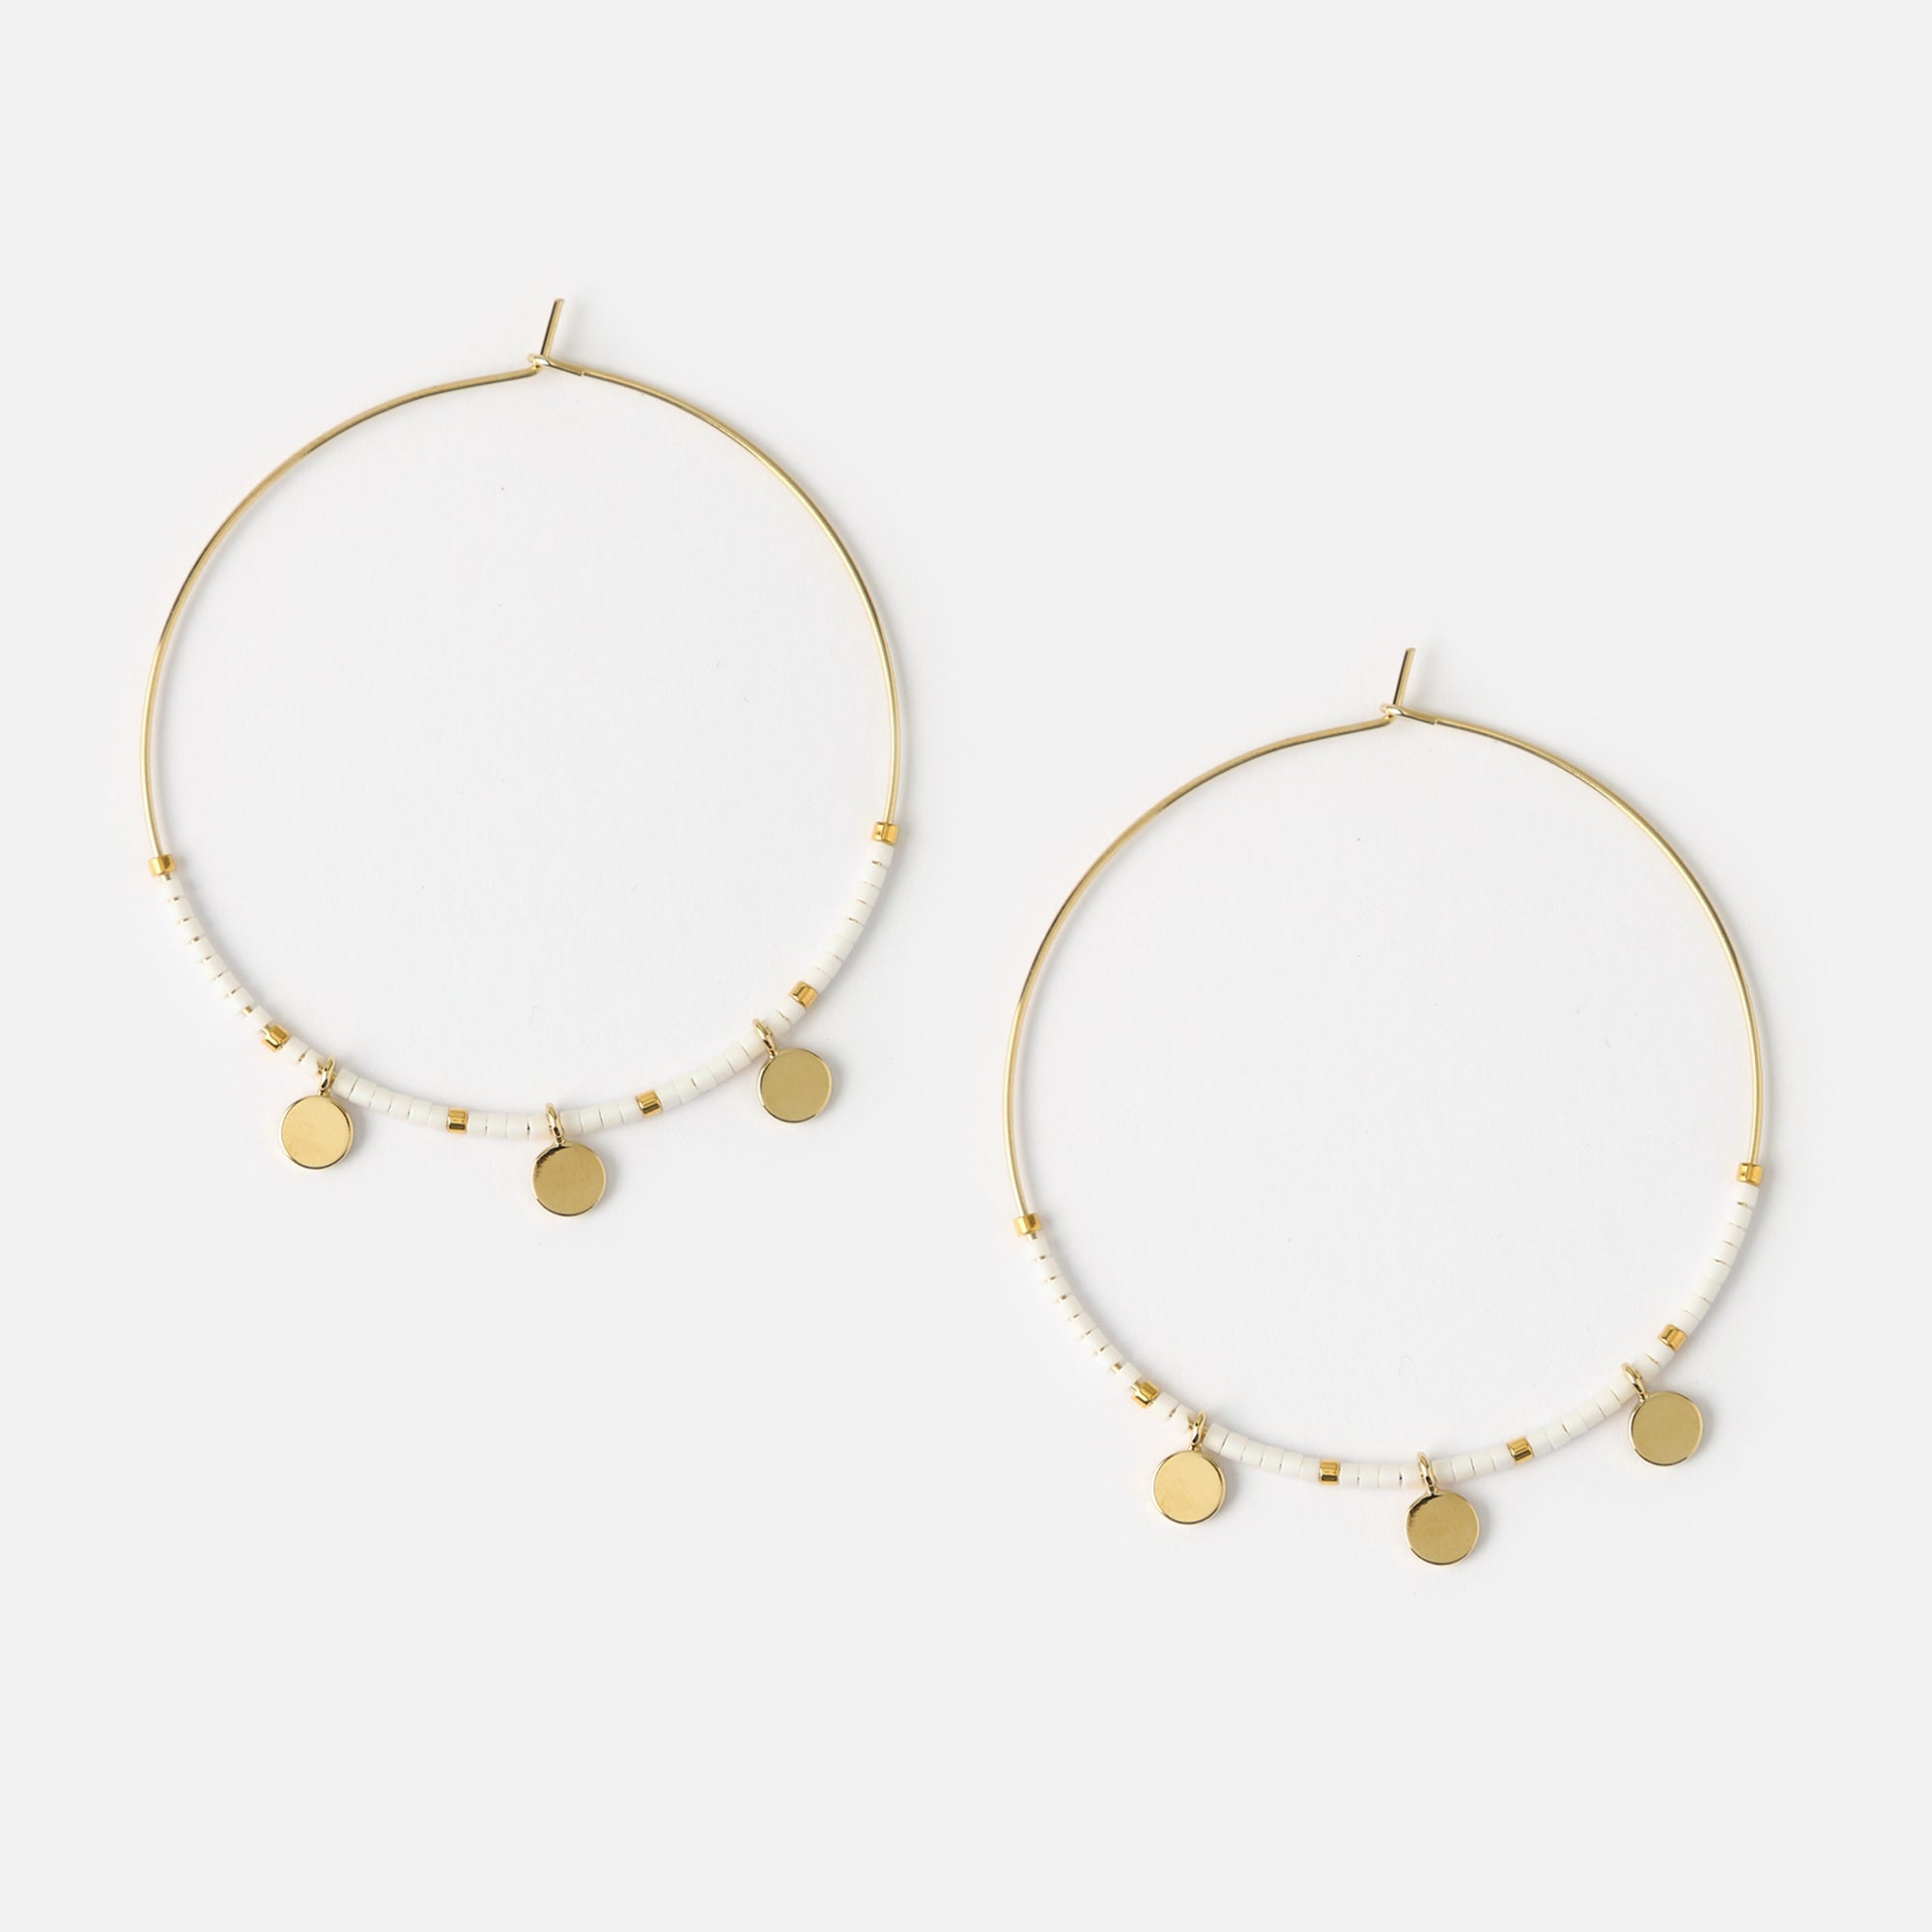 Coin Charm Seedbead Hoop Earrings - White